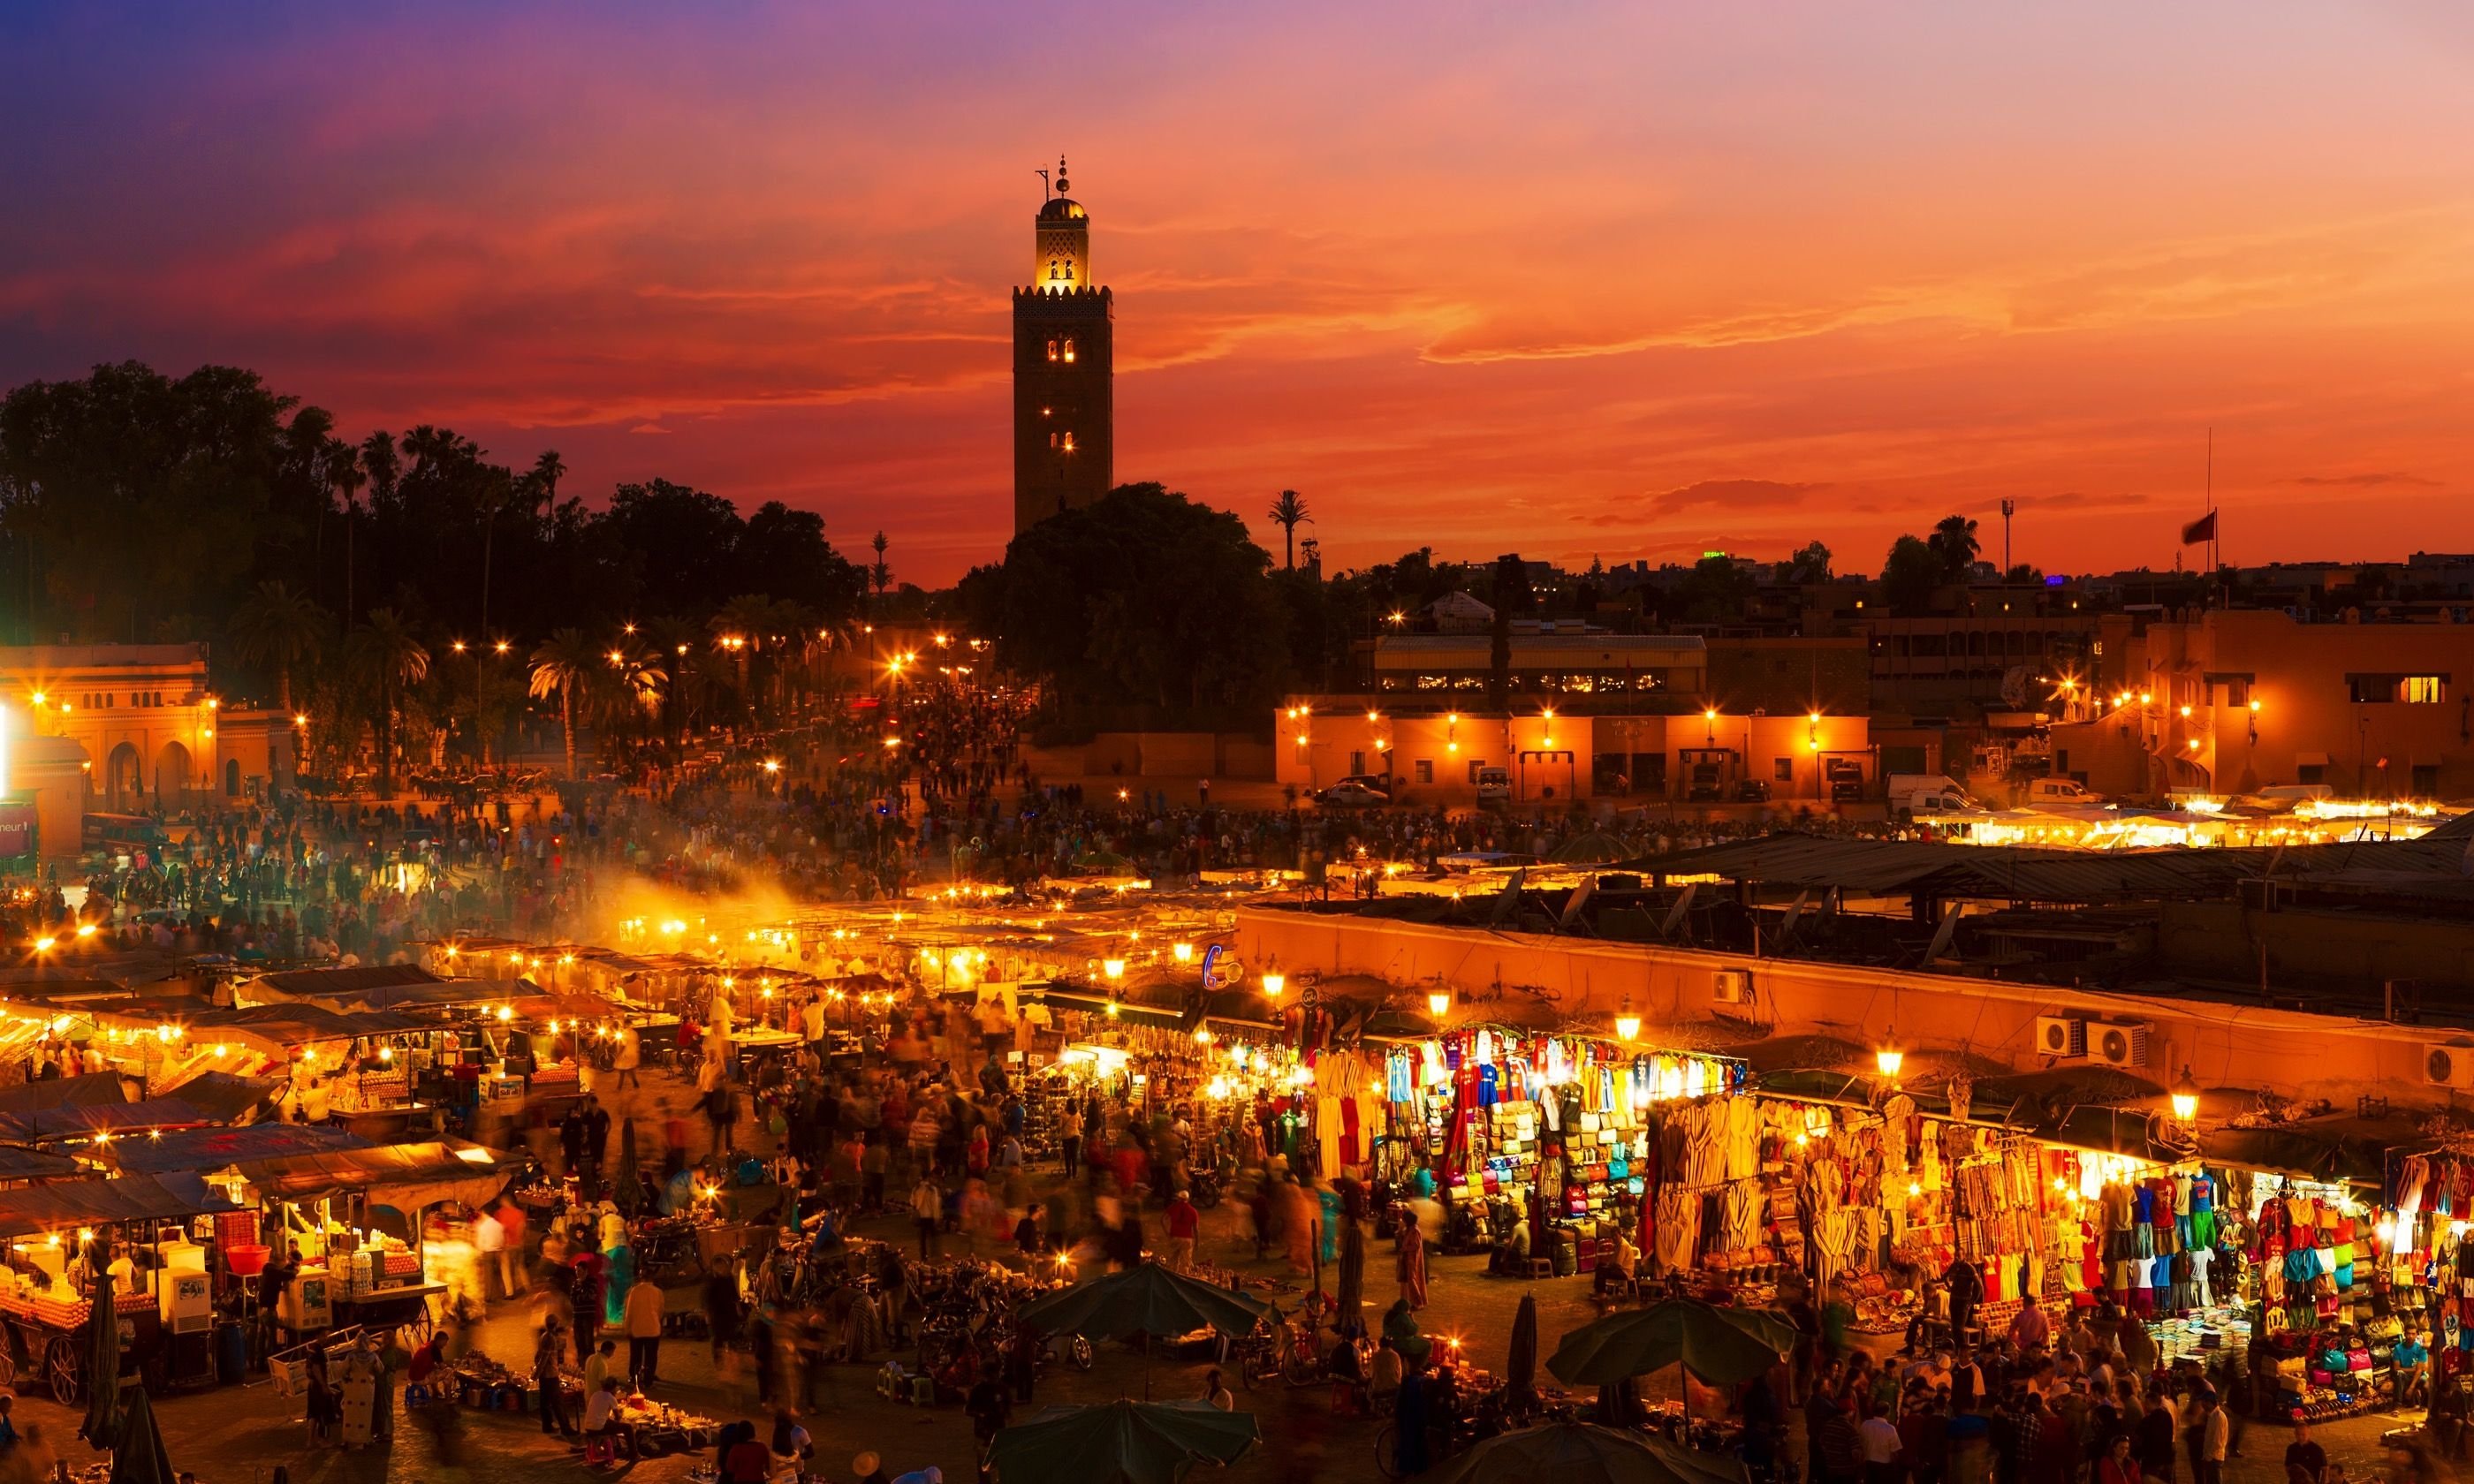 Sunset in Marrakech (Shutterstock.com)